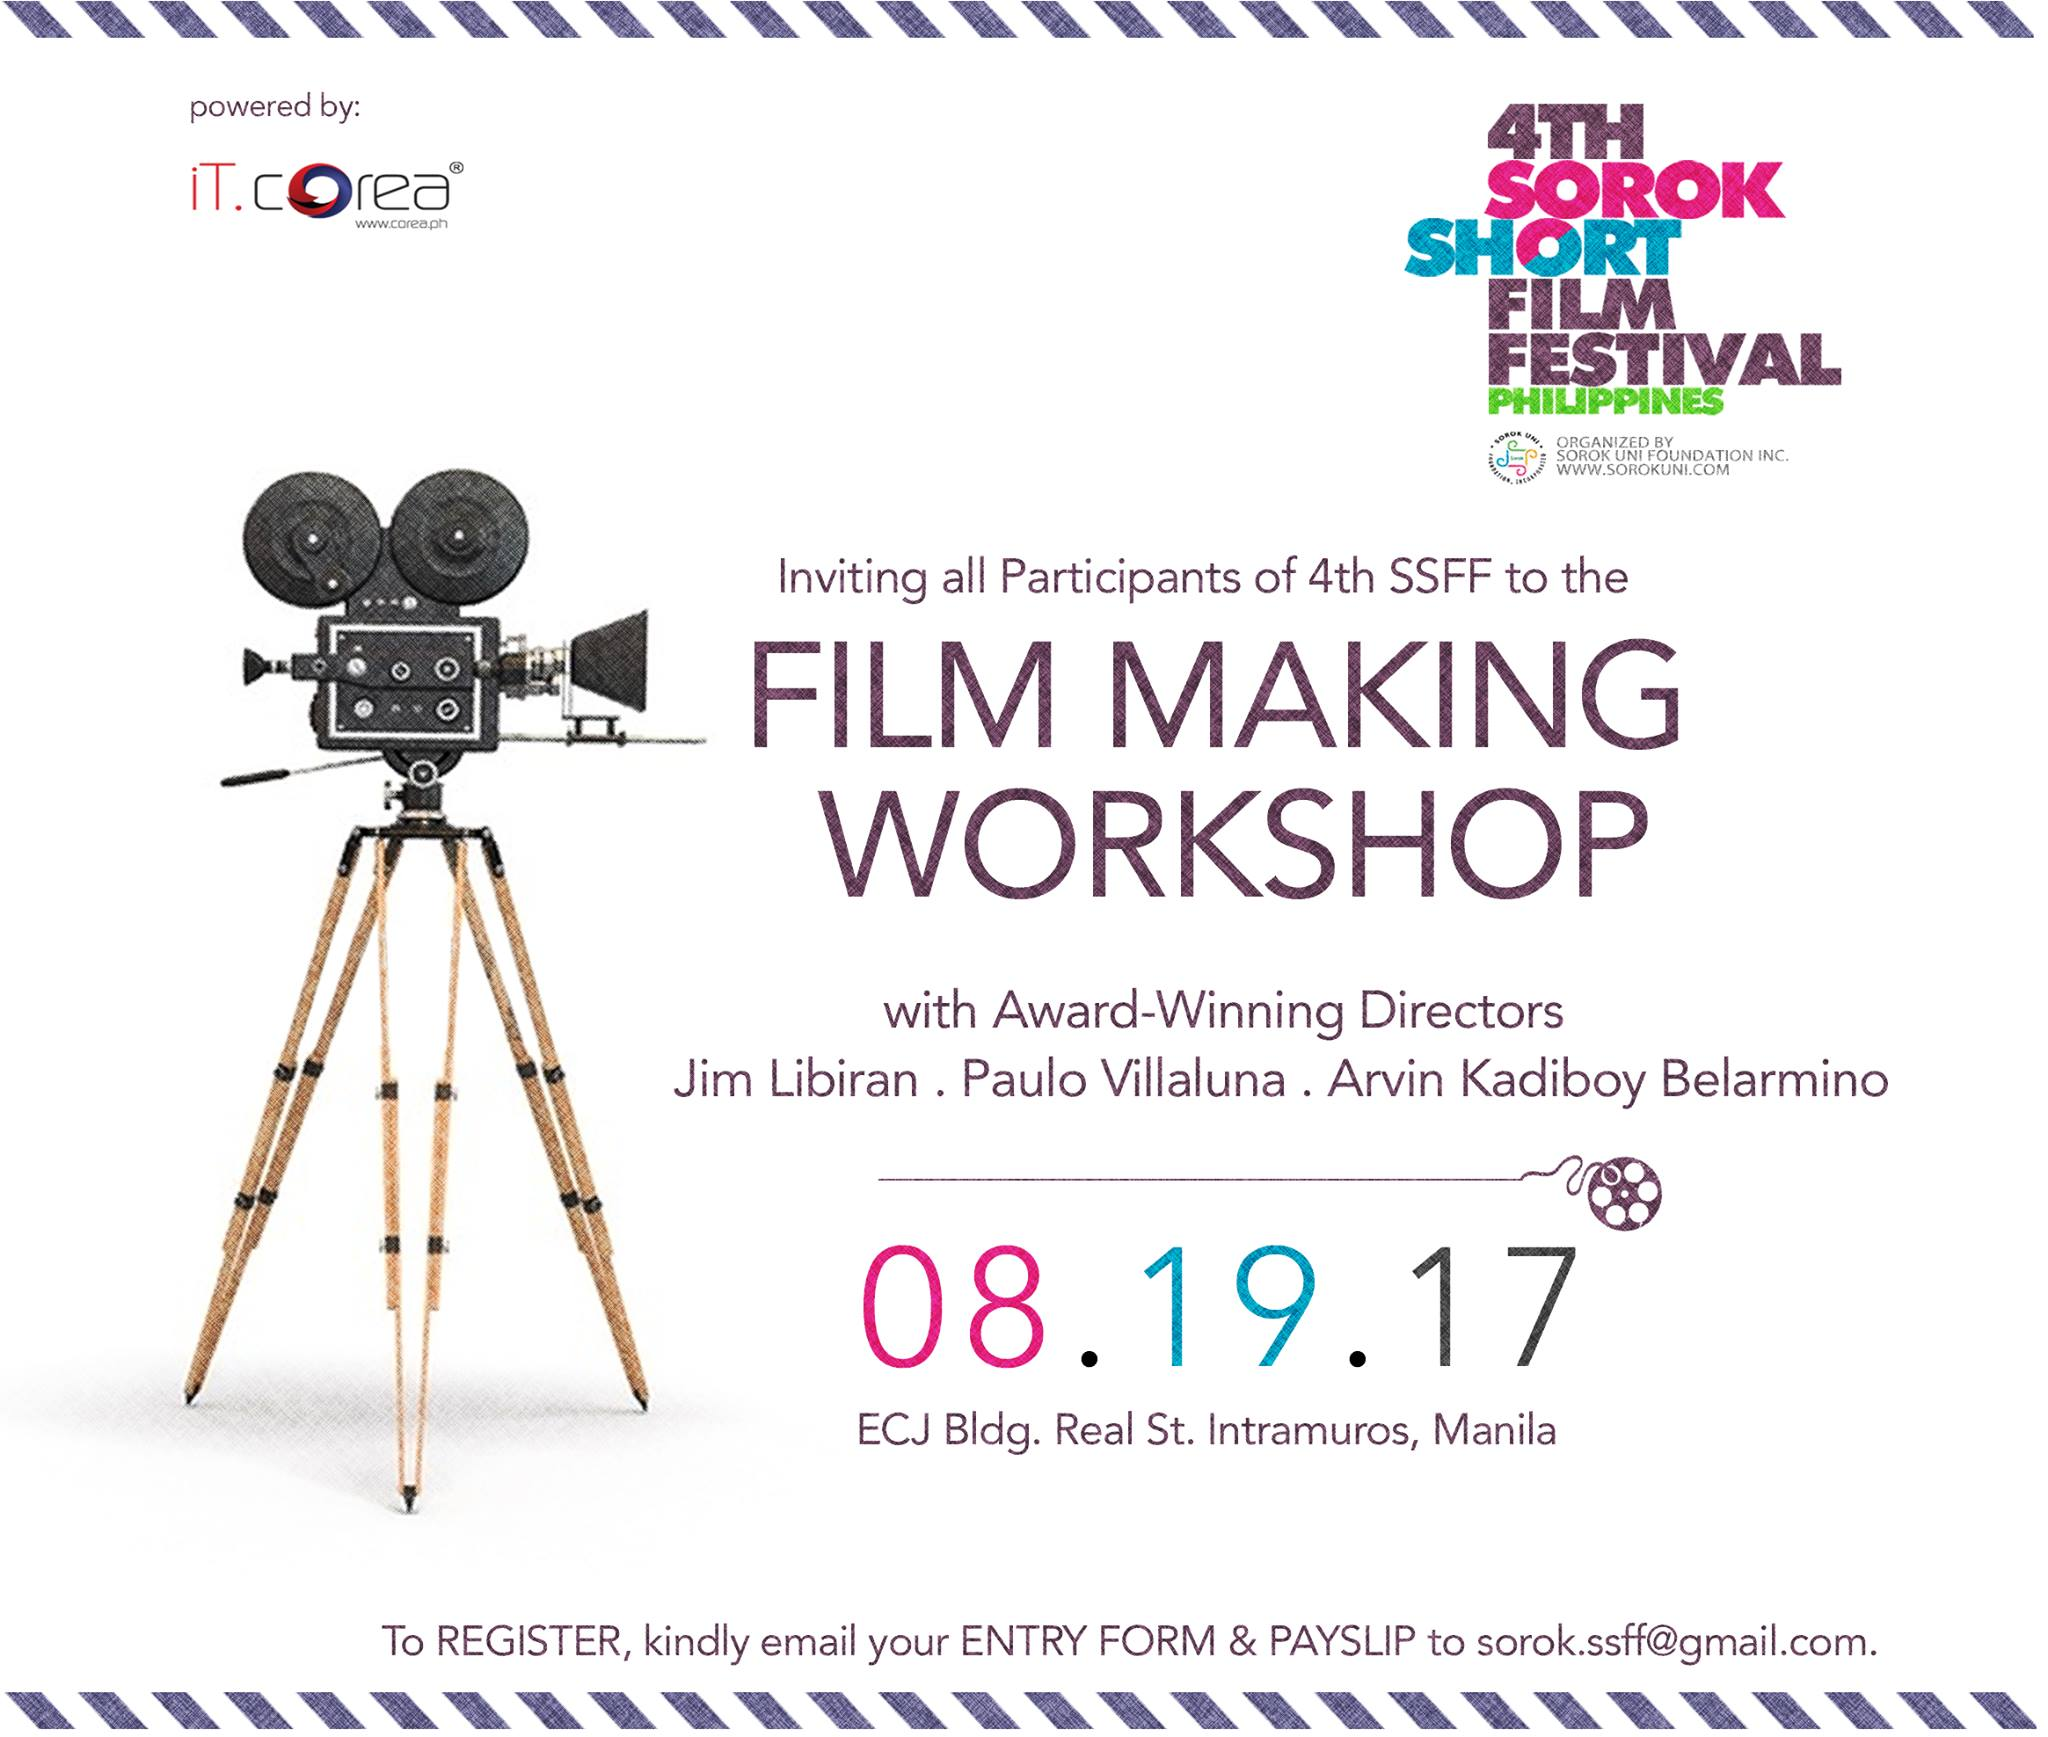 Sorok Short Film Festival‎4TH SSFF Filmmaking Workshop Page Liked · August 2 · 4TH SSFF Filmmaking Workshop Public · Hosted by Sorok Short Film Festival InterestedShare clock Saturday at 8 AM - 5 PM 5 days from now · 27–32°Heavy Thunderstorm pin Show Map Intramuros, Manila Details ANNOUNCEMENT: All participants of 4TH SSFF who will be registering before August 15, 2017 are entitled to a Filmmaking Workshop to be held on August 19, 2017 in Intramuros, Manila for FREE. Kindly send us a private message for more details. This shall be facilitated by Director Jim Libiran. The workshop will be organized solely for the participants of the 4th SOROK SHORT FILM FESTIVAL.